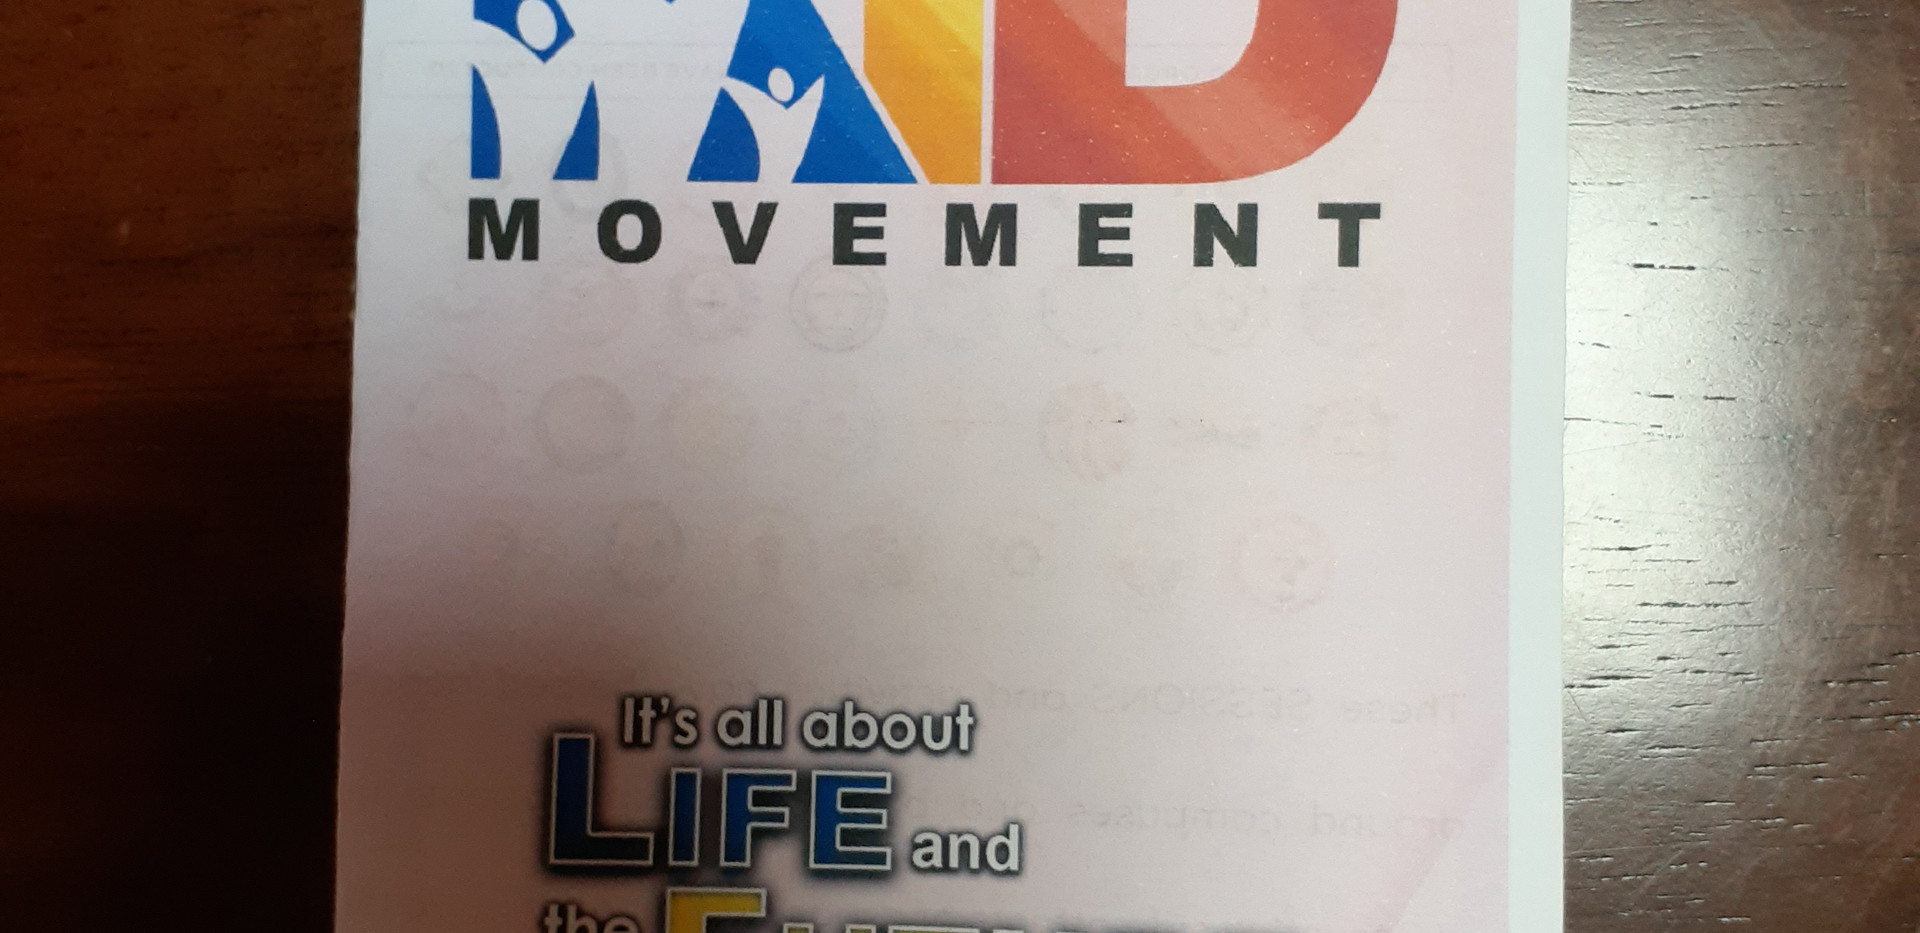 Kabataan Iwas Droga (K.I.D) Movement from City Government of Imus